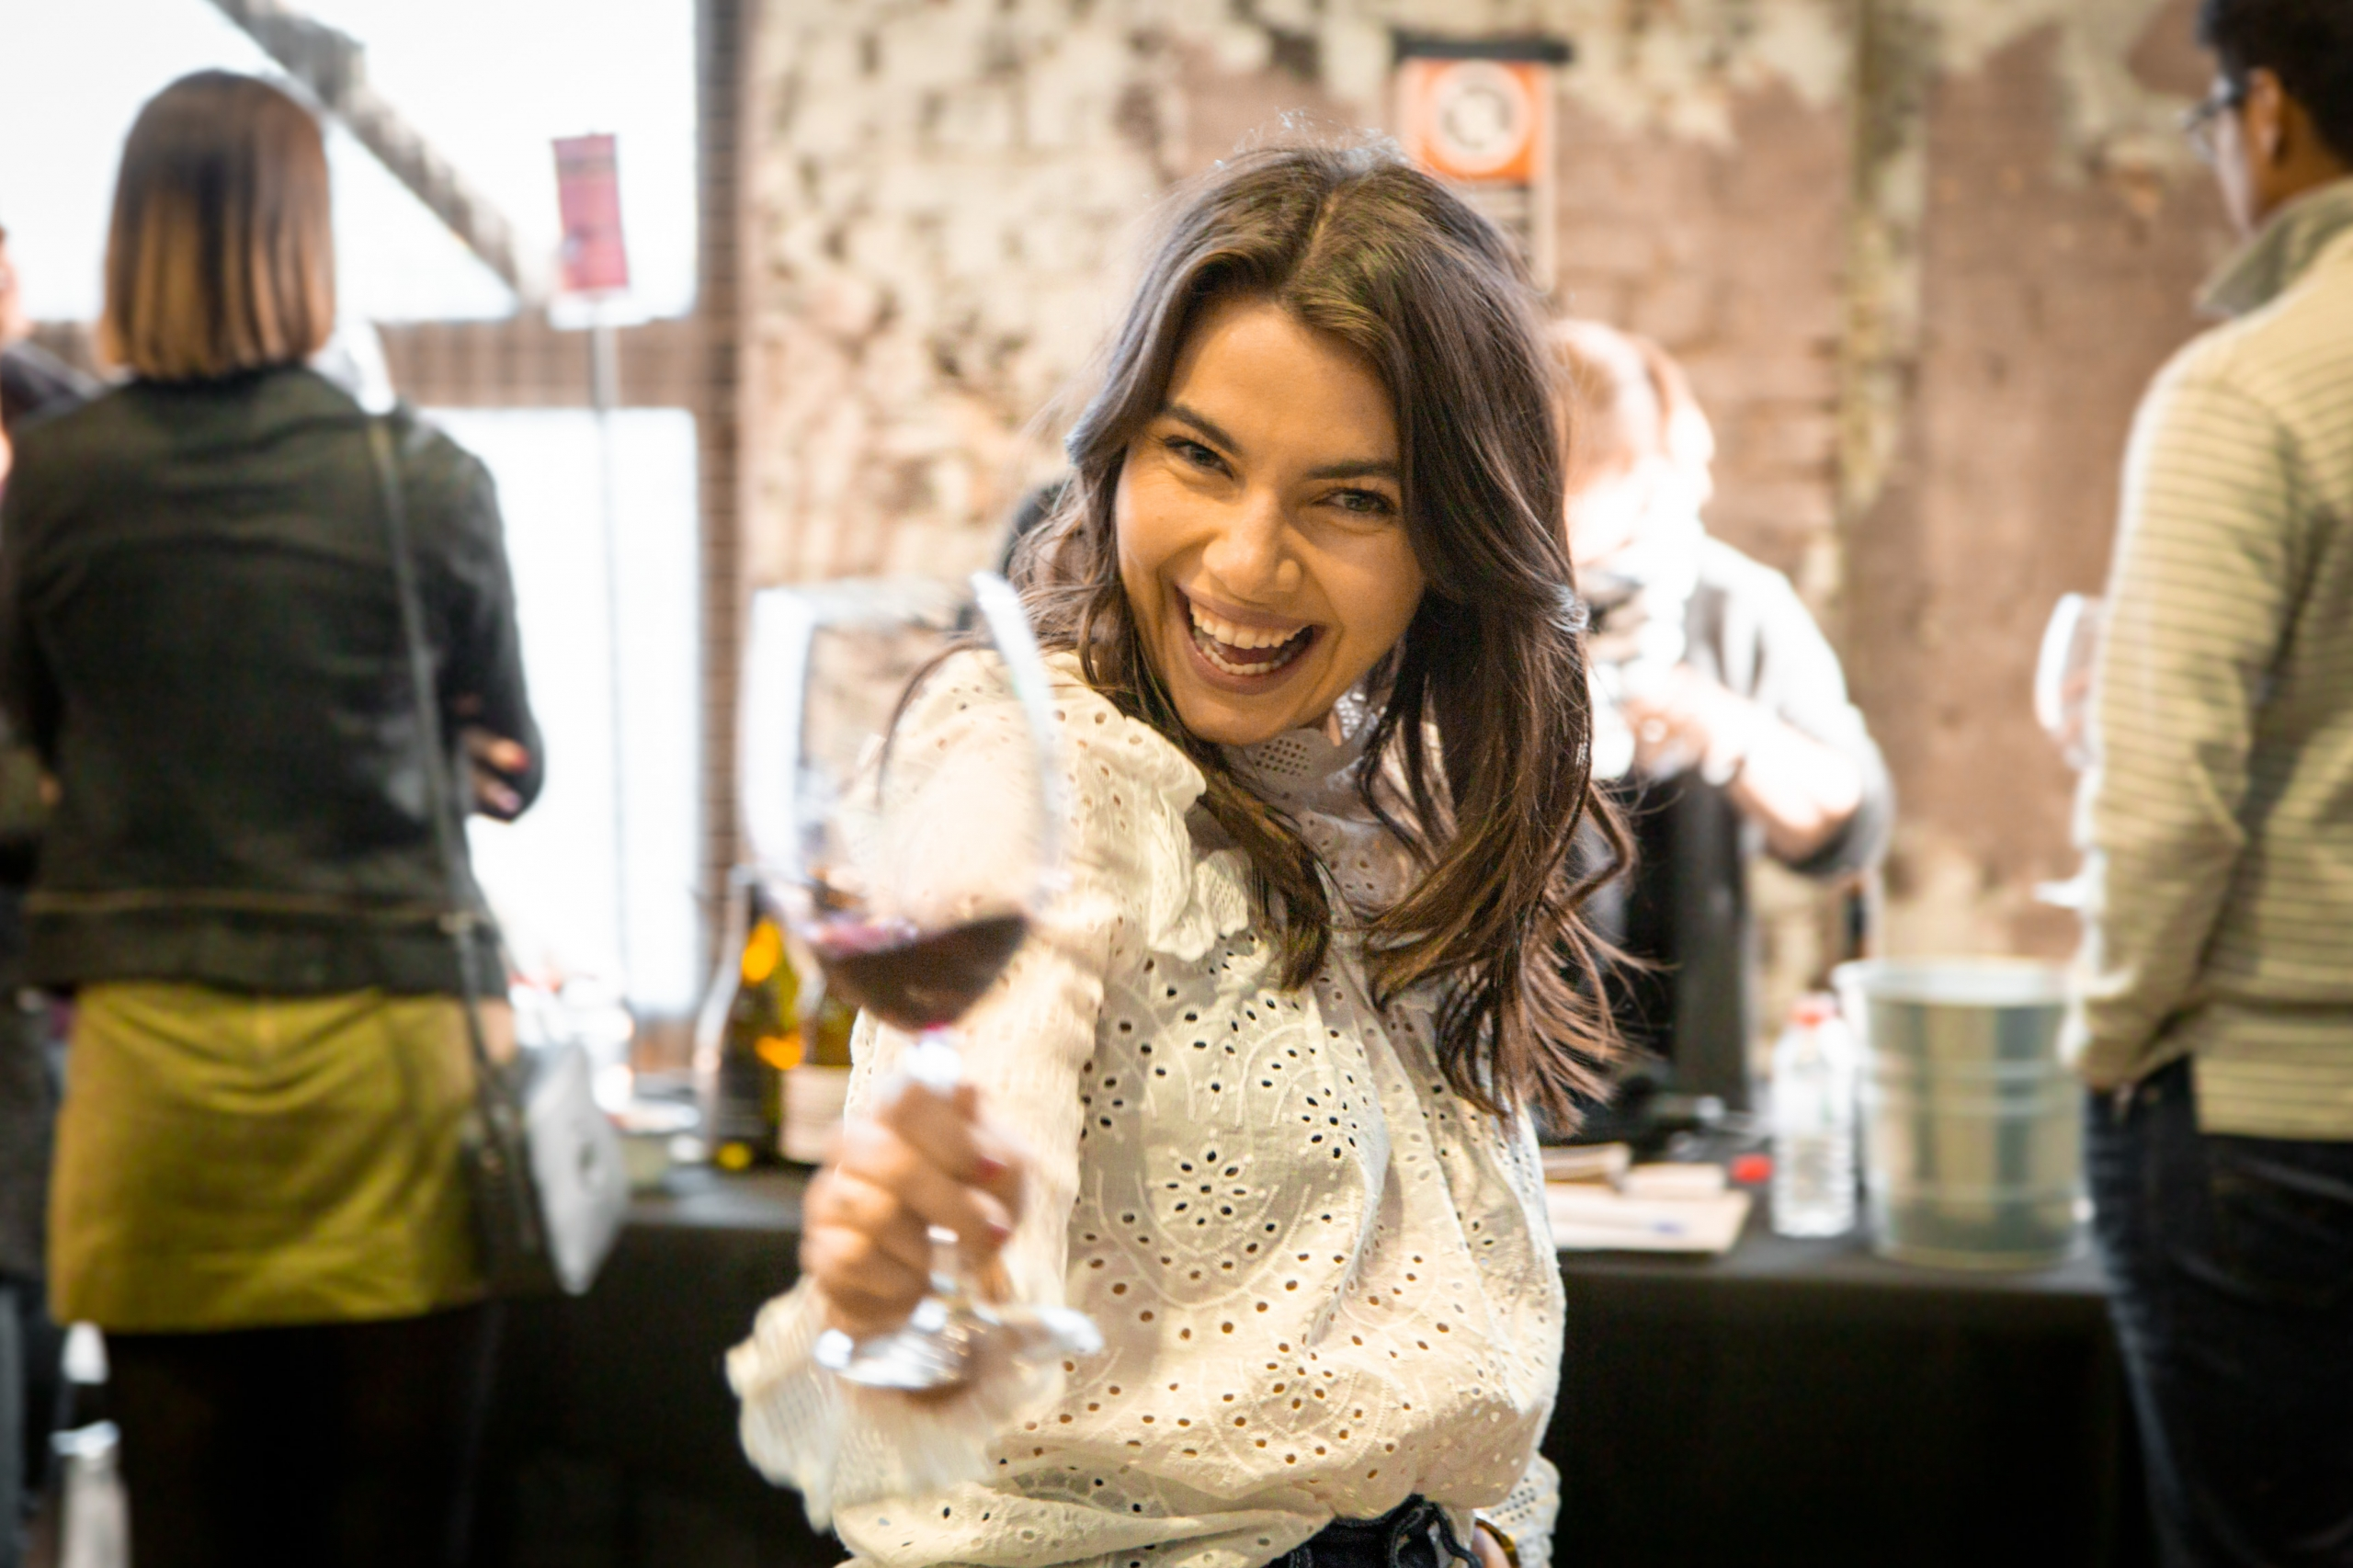 A woman in a white top smiling and holding out a glass of red wine at a Barossa wine event